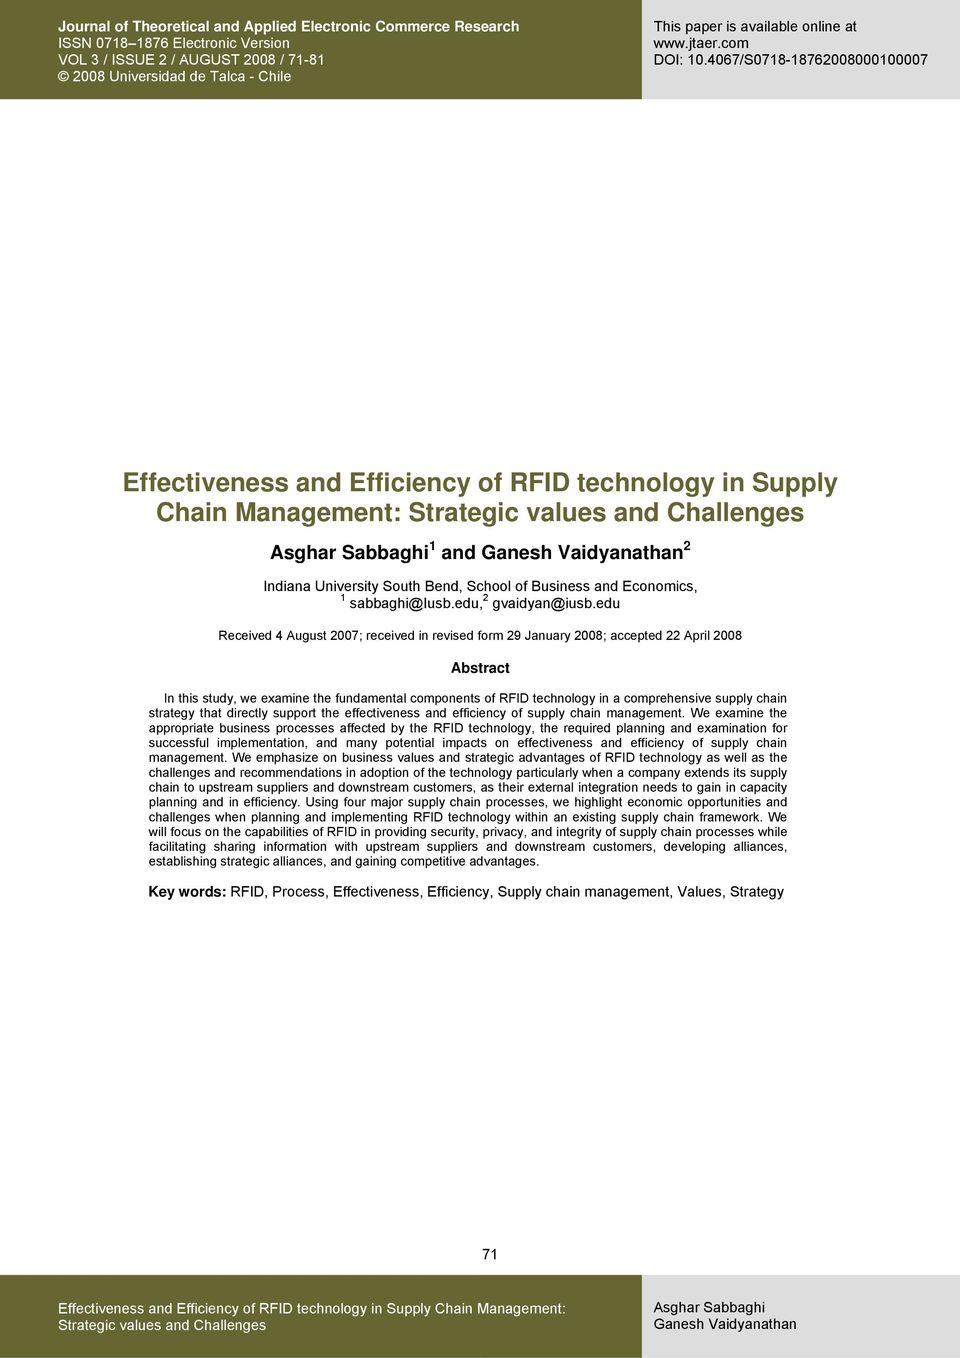 chain strategy that directly support the effectiveness and efficiency of supply chain management.